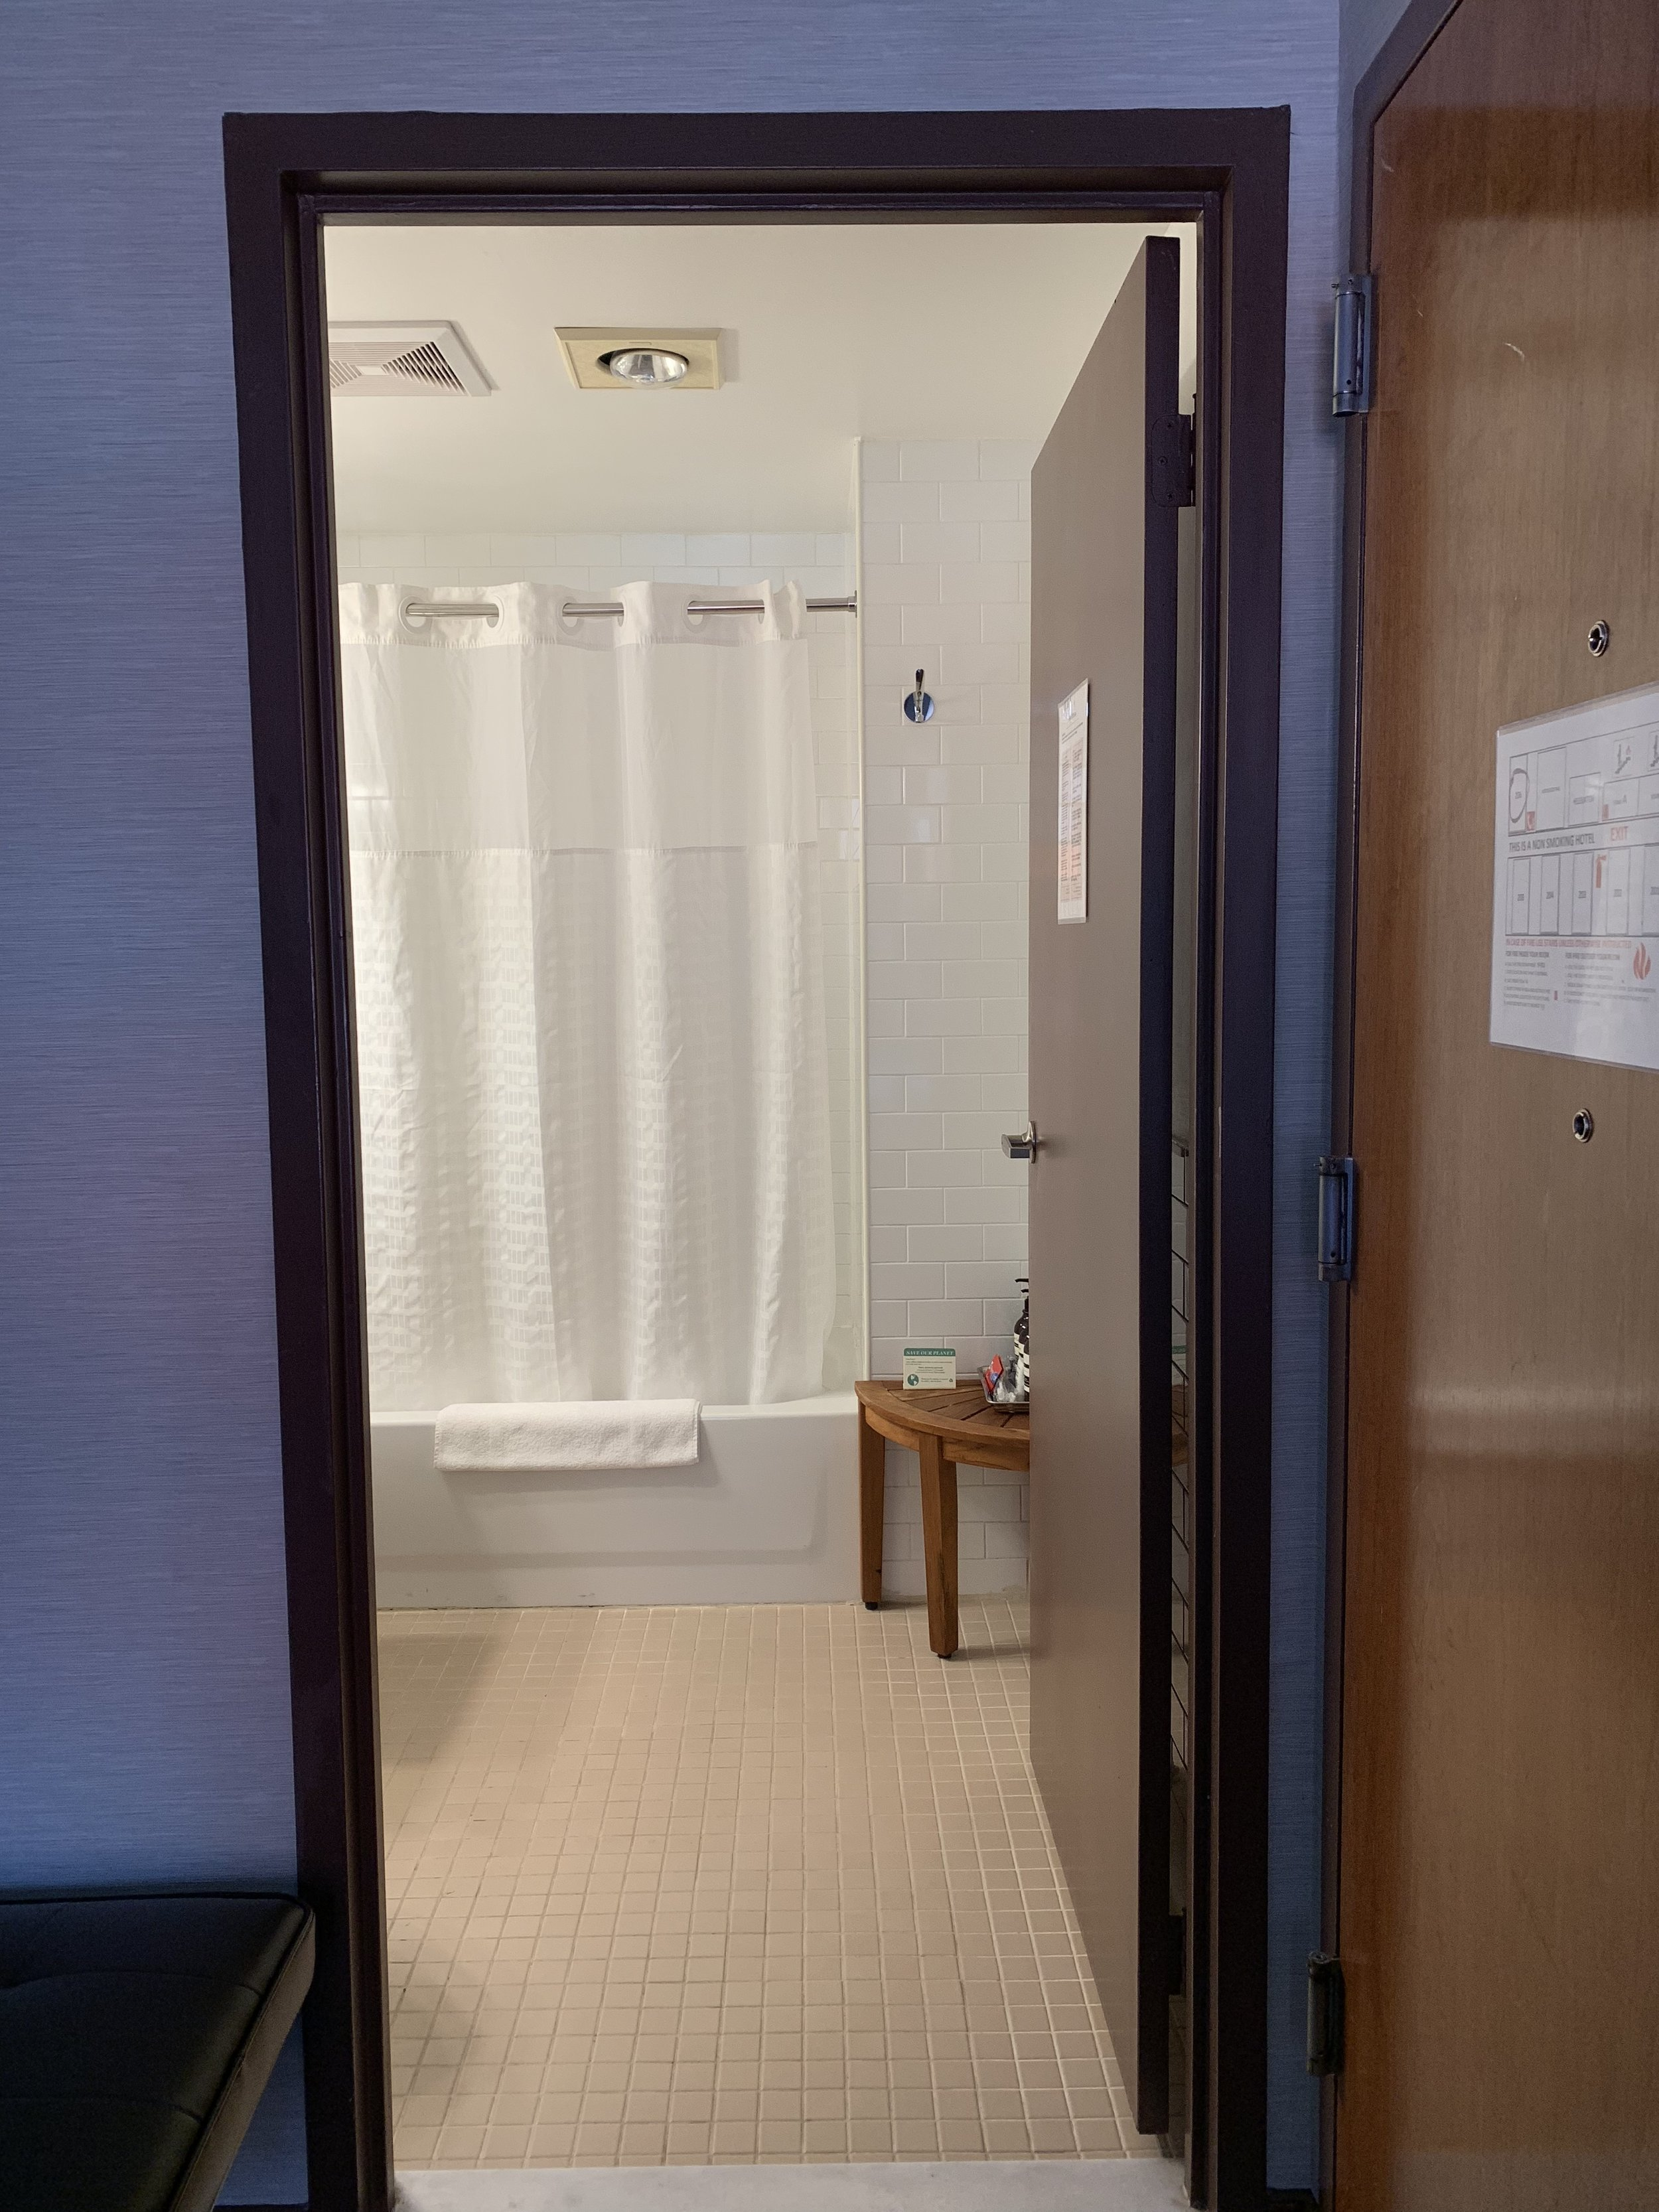 Our Superior bathrooms are spacious and clean